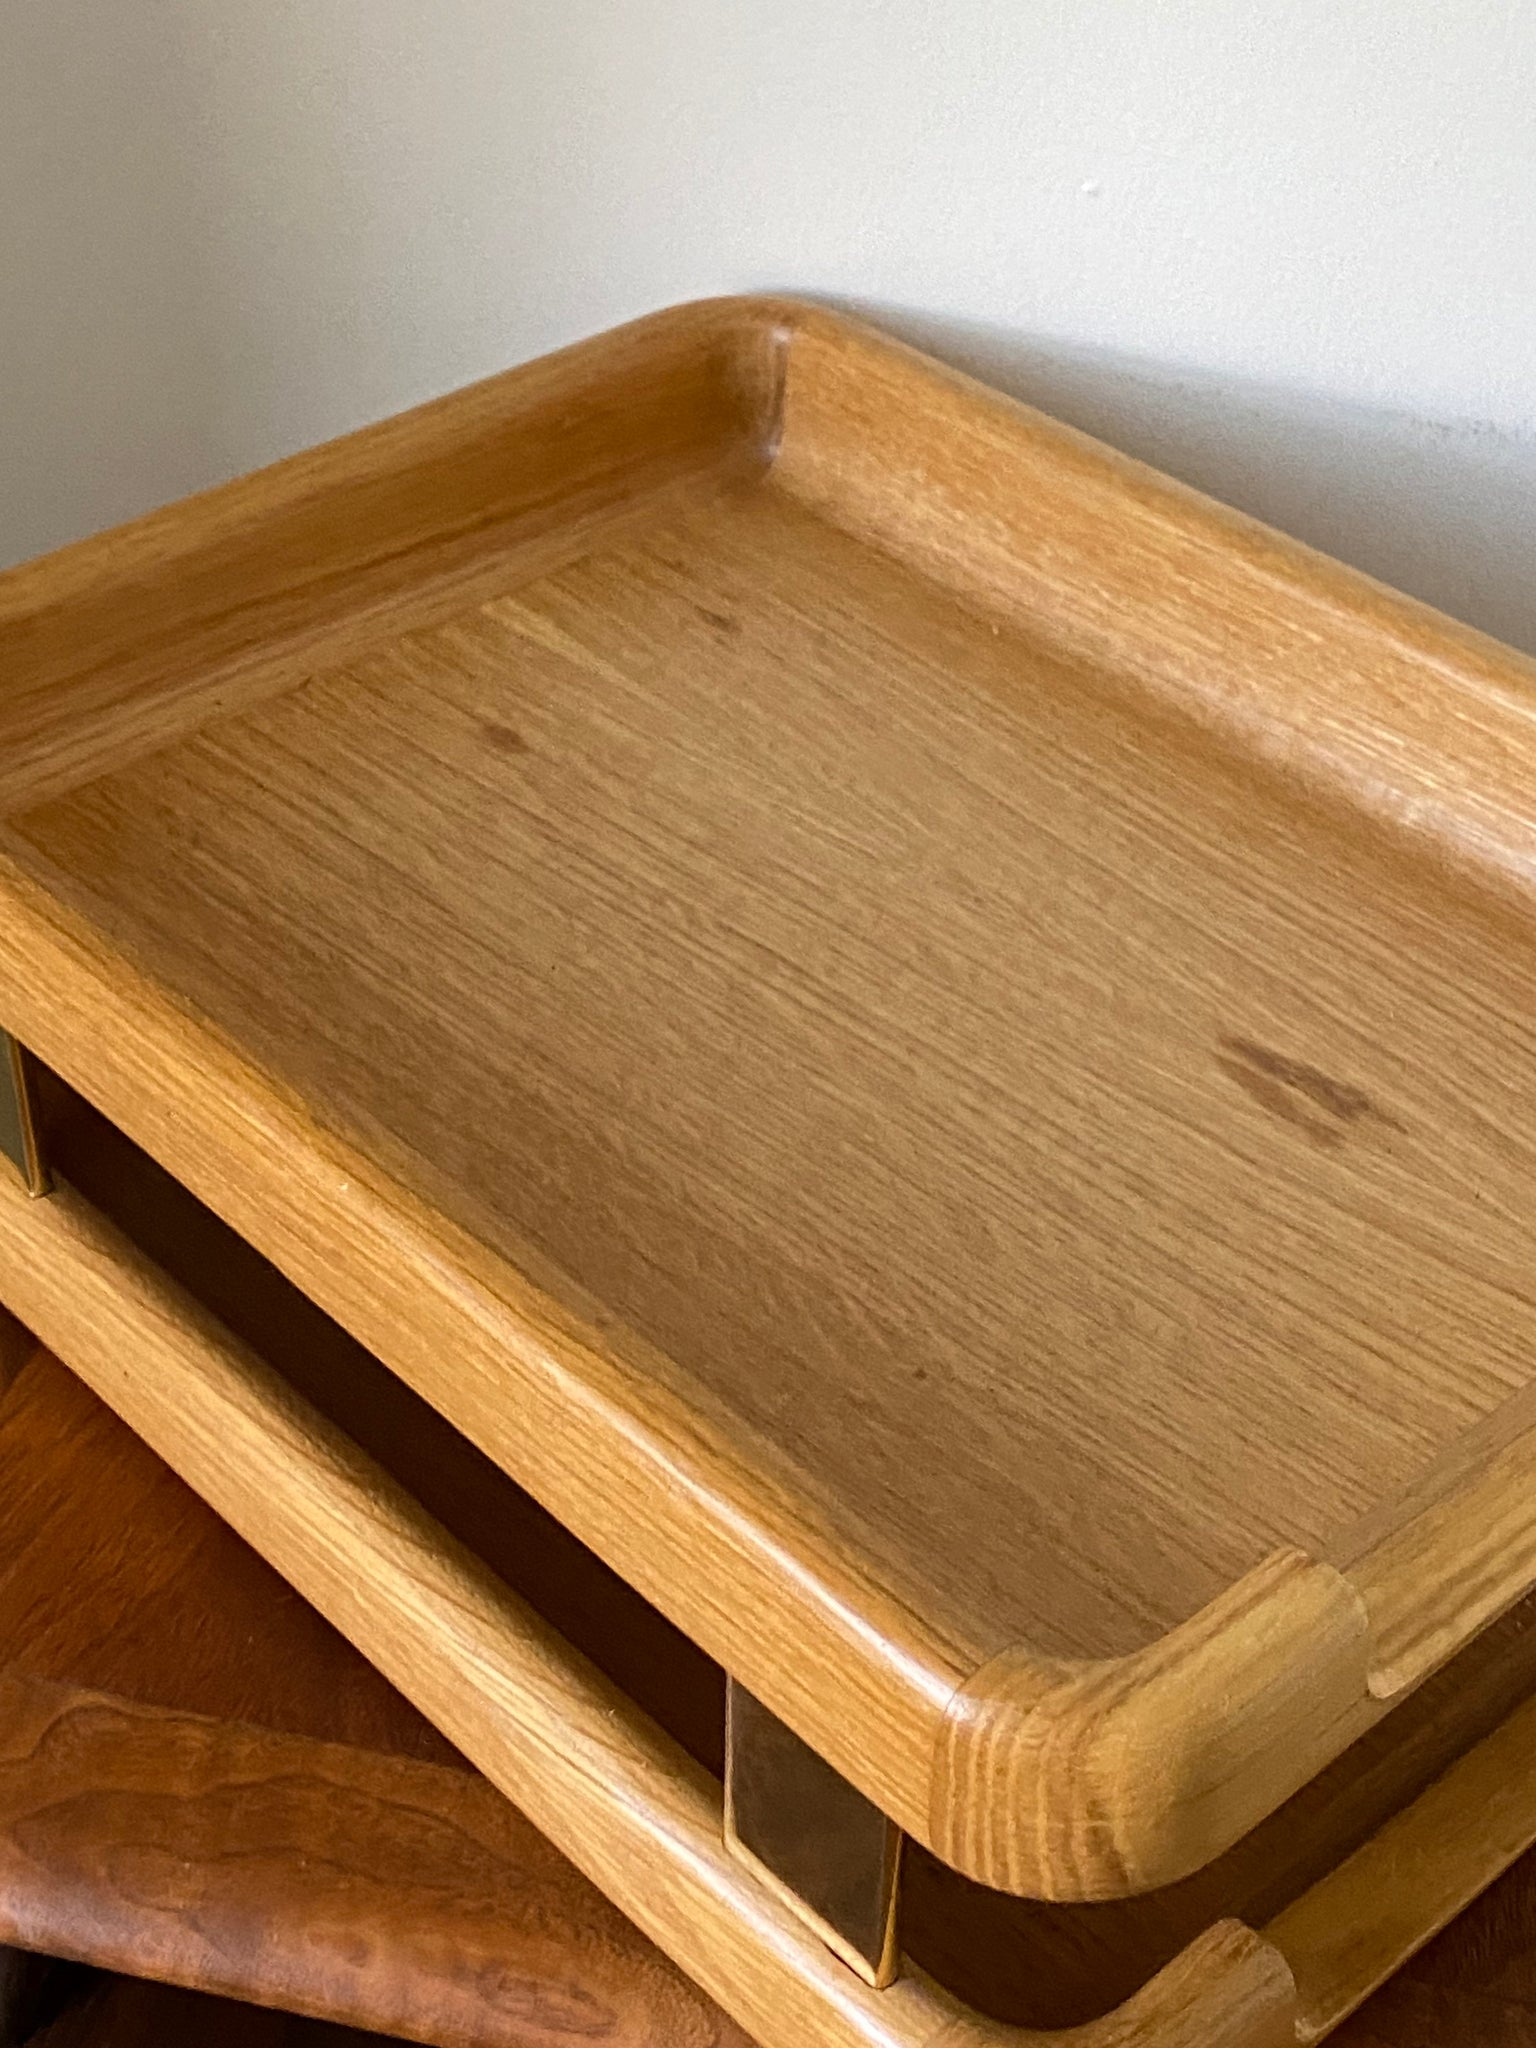 80's Solid Oak with Gold sides Paper Organizer By Eldin Woodline 6500